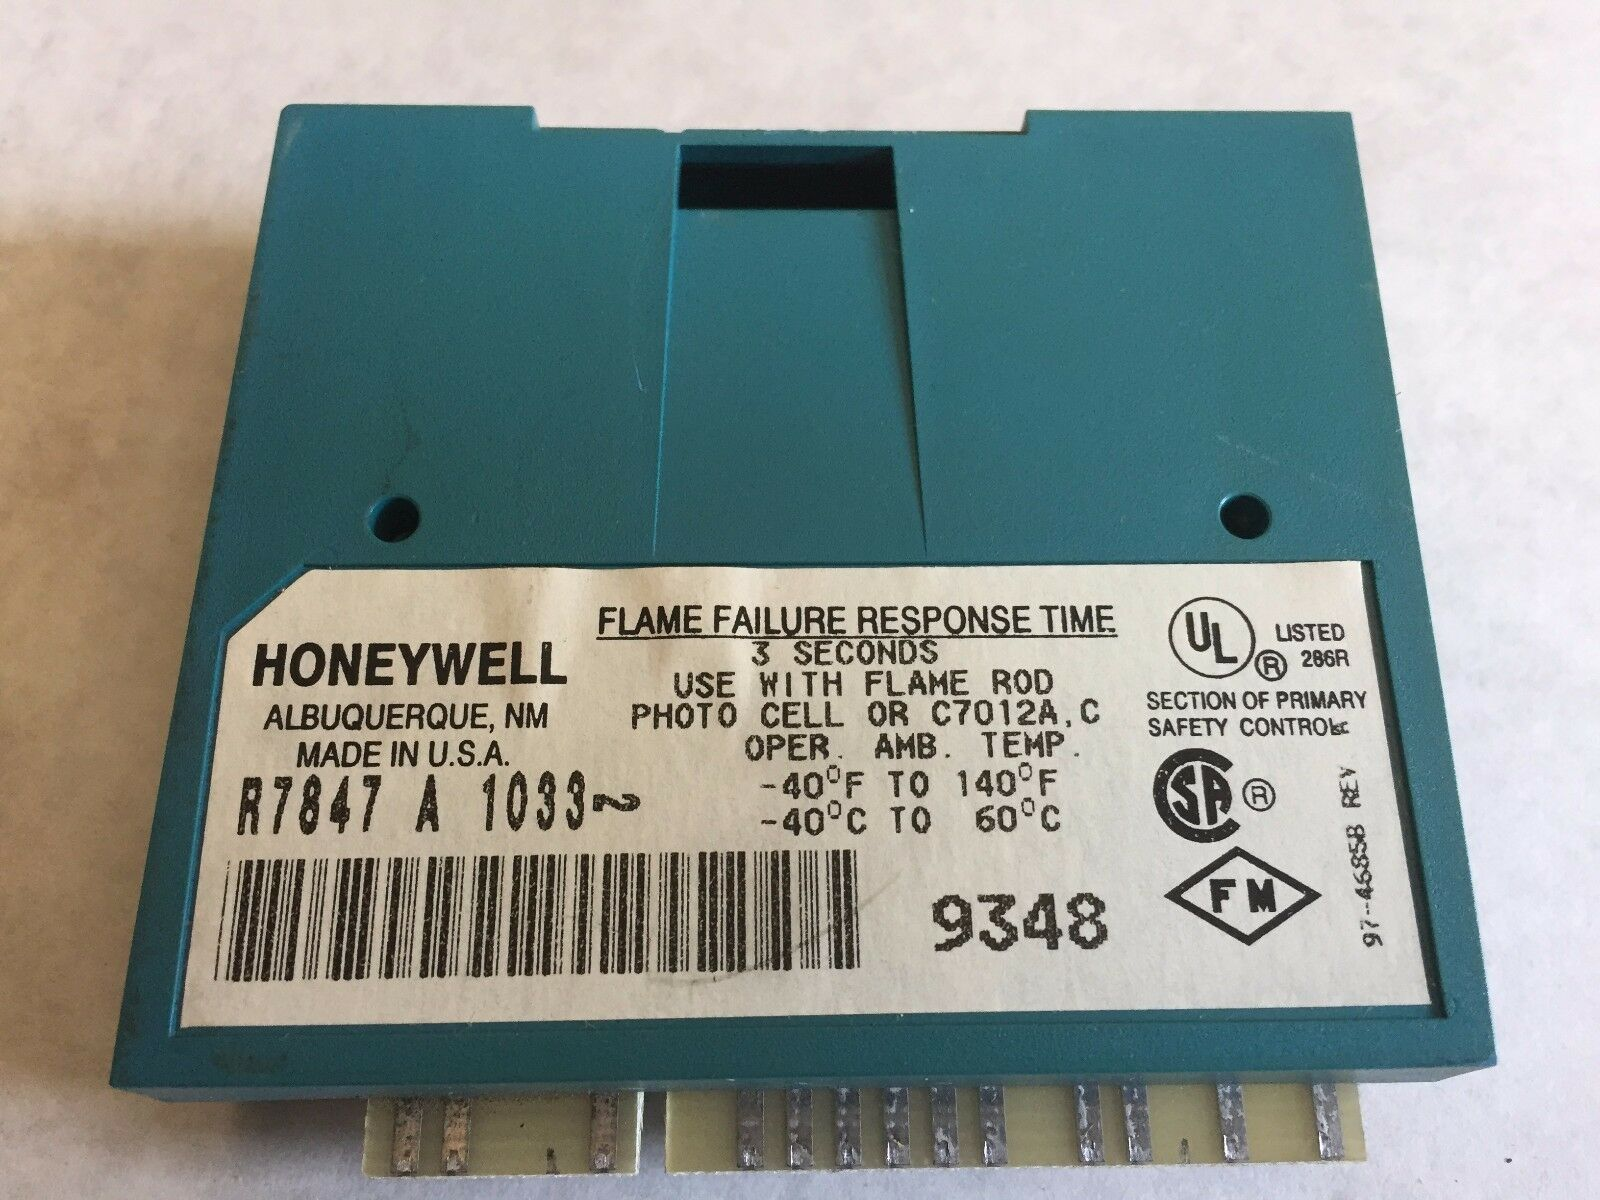 Honeywell R7847 A 1033 Rectification Flame Amplifeir Ebay L4064b2210 Wiring Diagram Introduction To Electrical